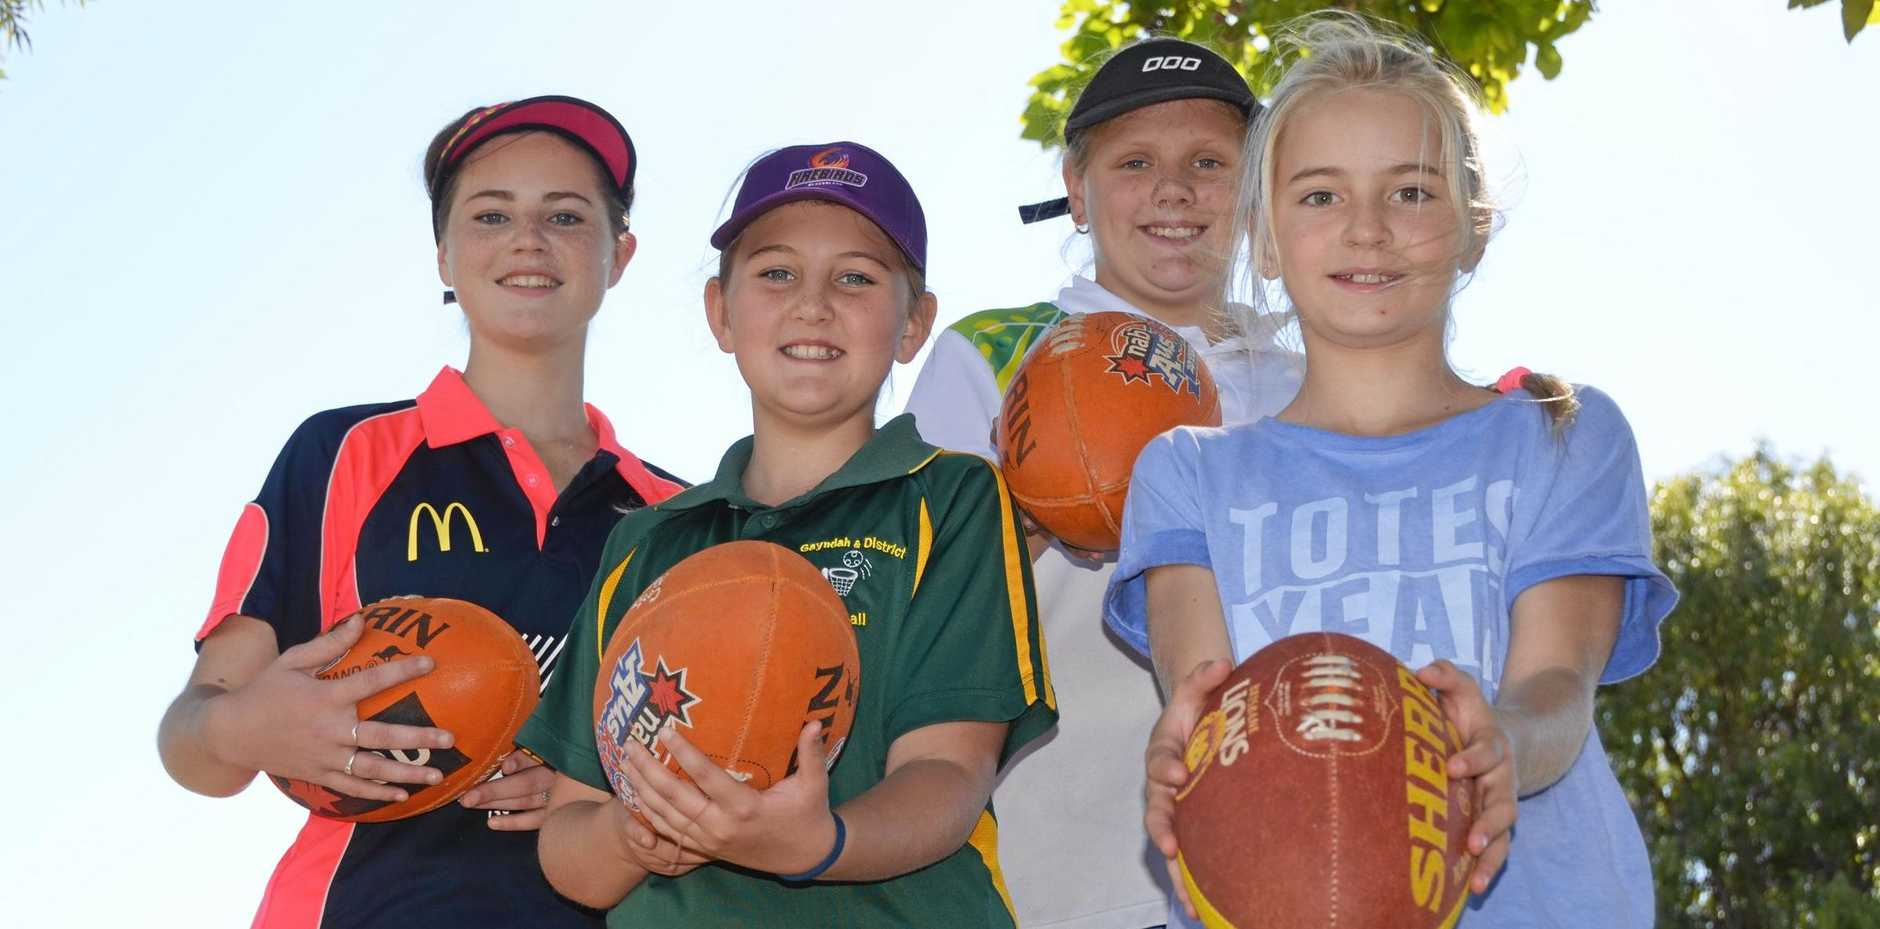 HAVING A BALL: Lauren Trott, Layla Roth, Sophie Doyle and Sian Bloor had a great time at the AFL holiday camp in Gayndah last year.